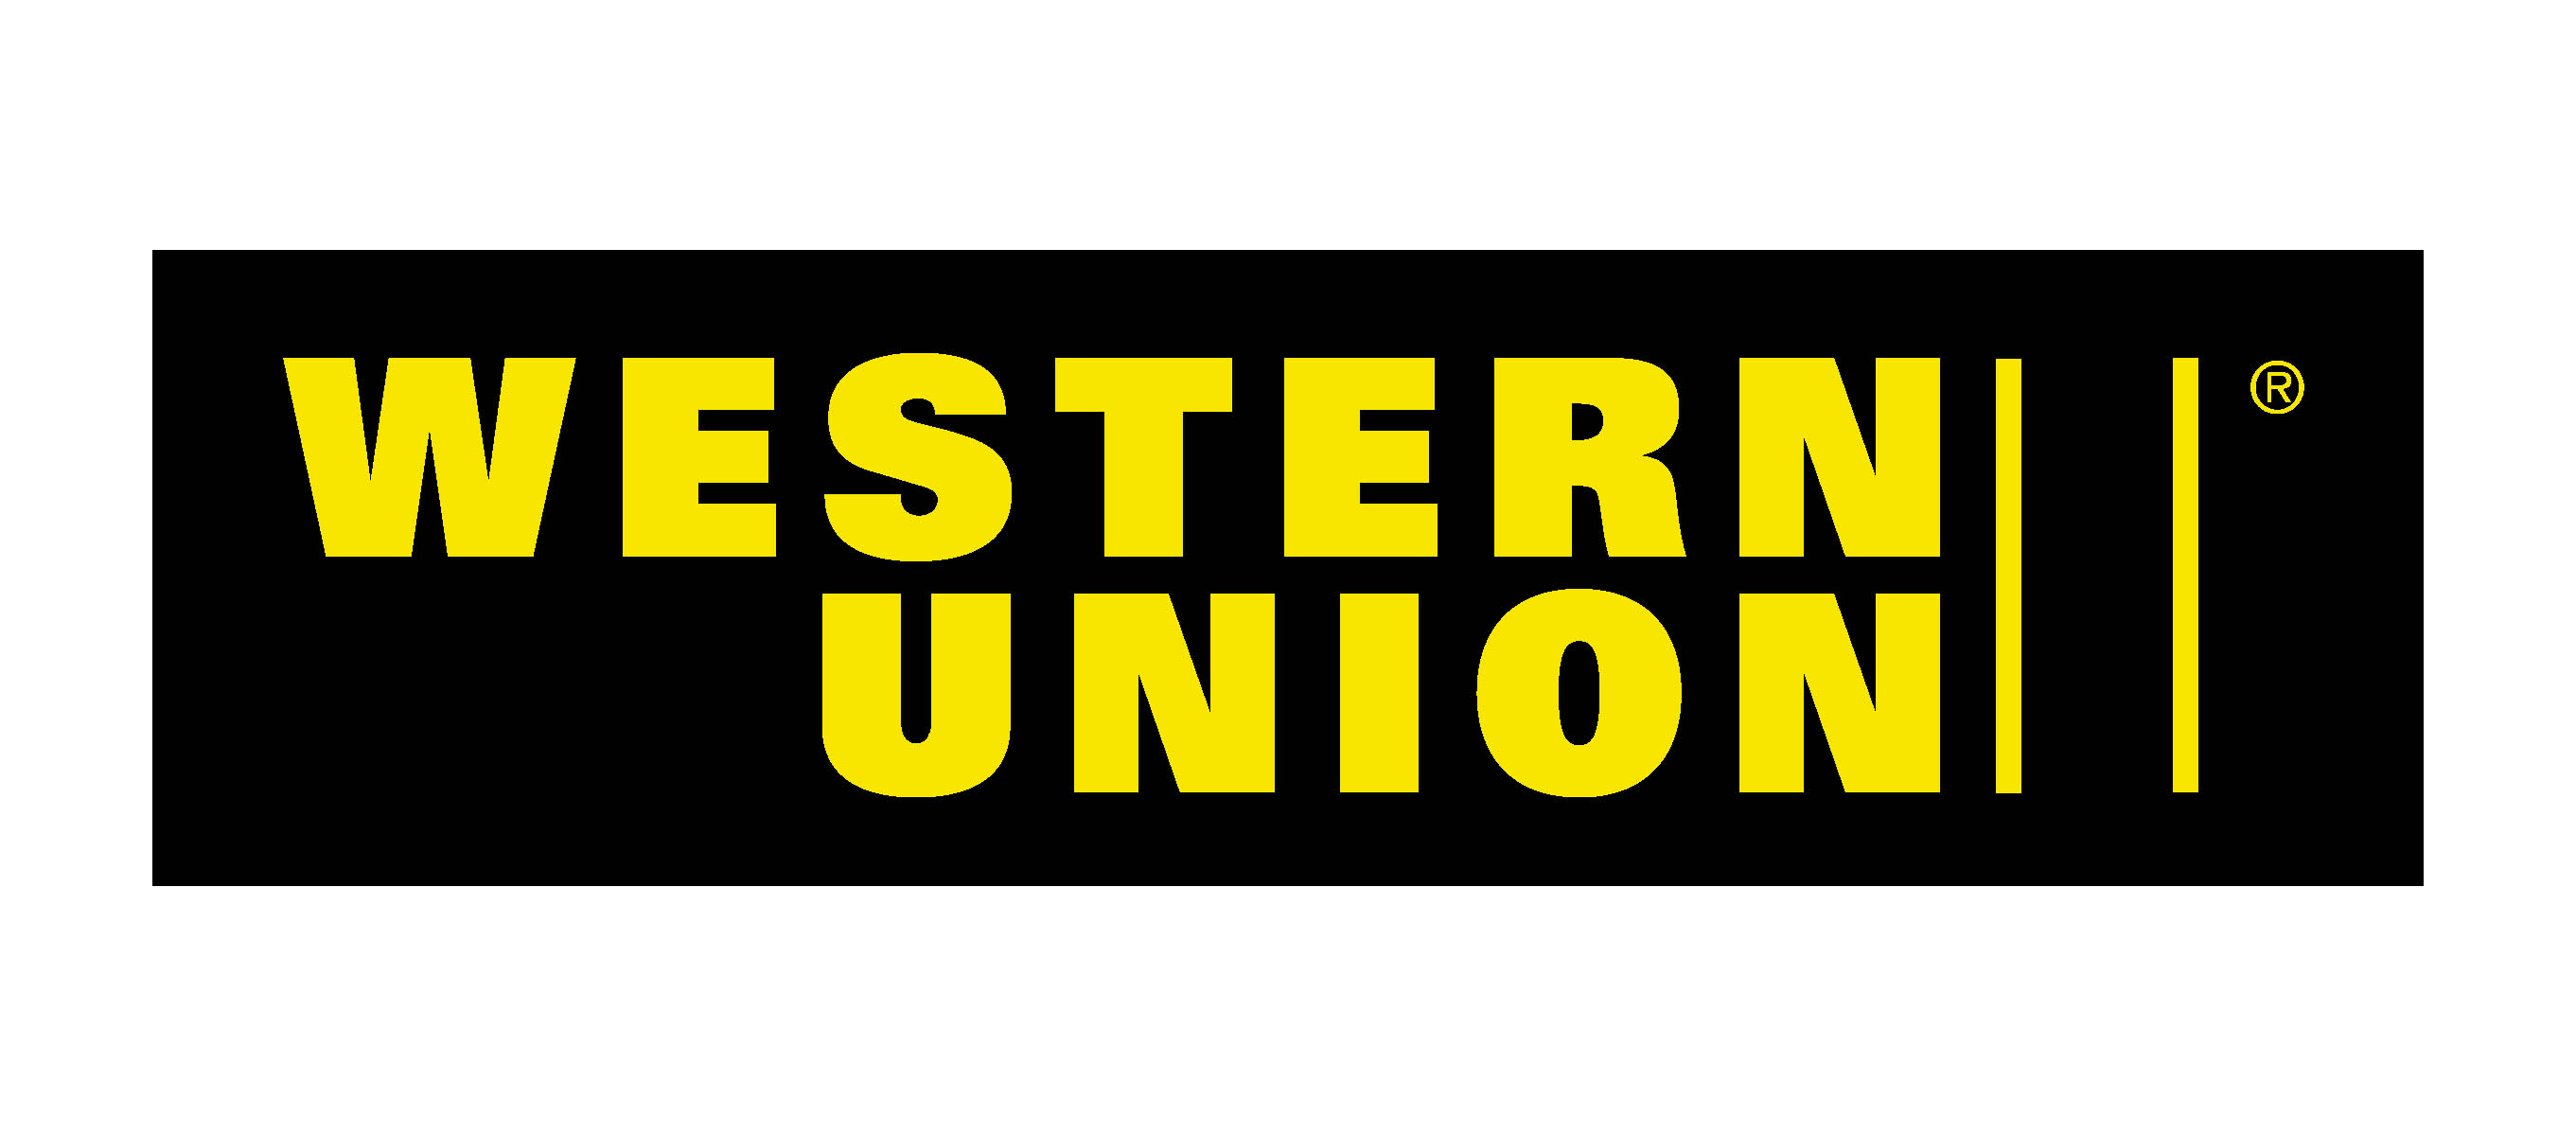 webstern union